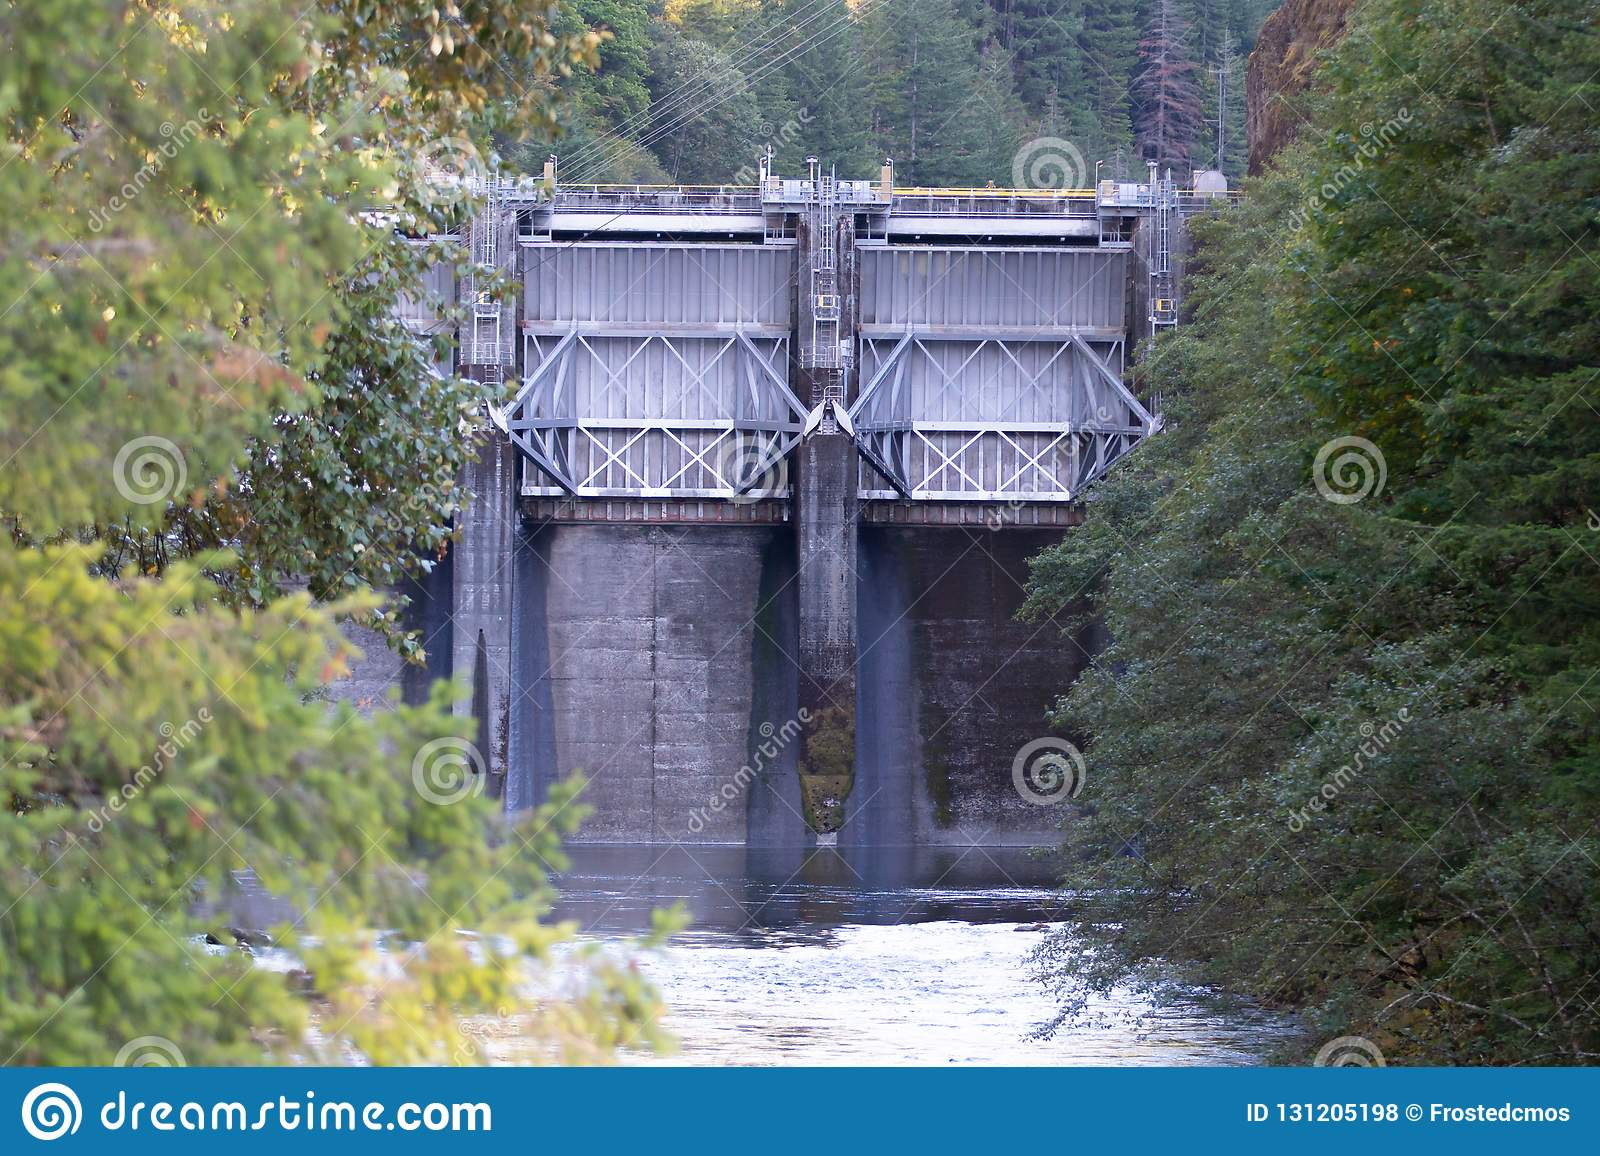 Steel levee dam on the Oregon river